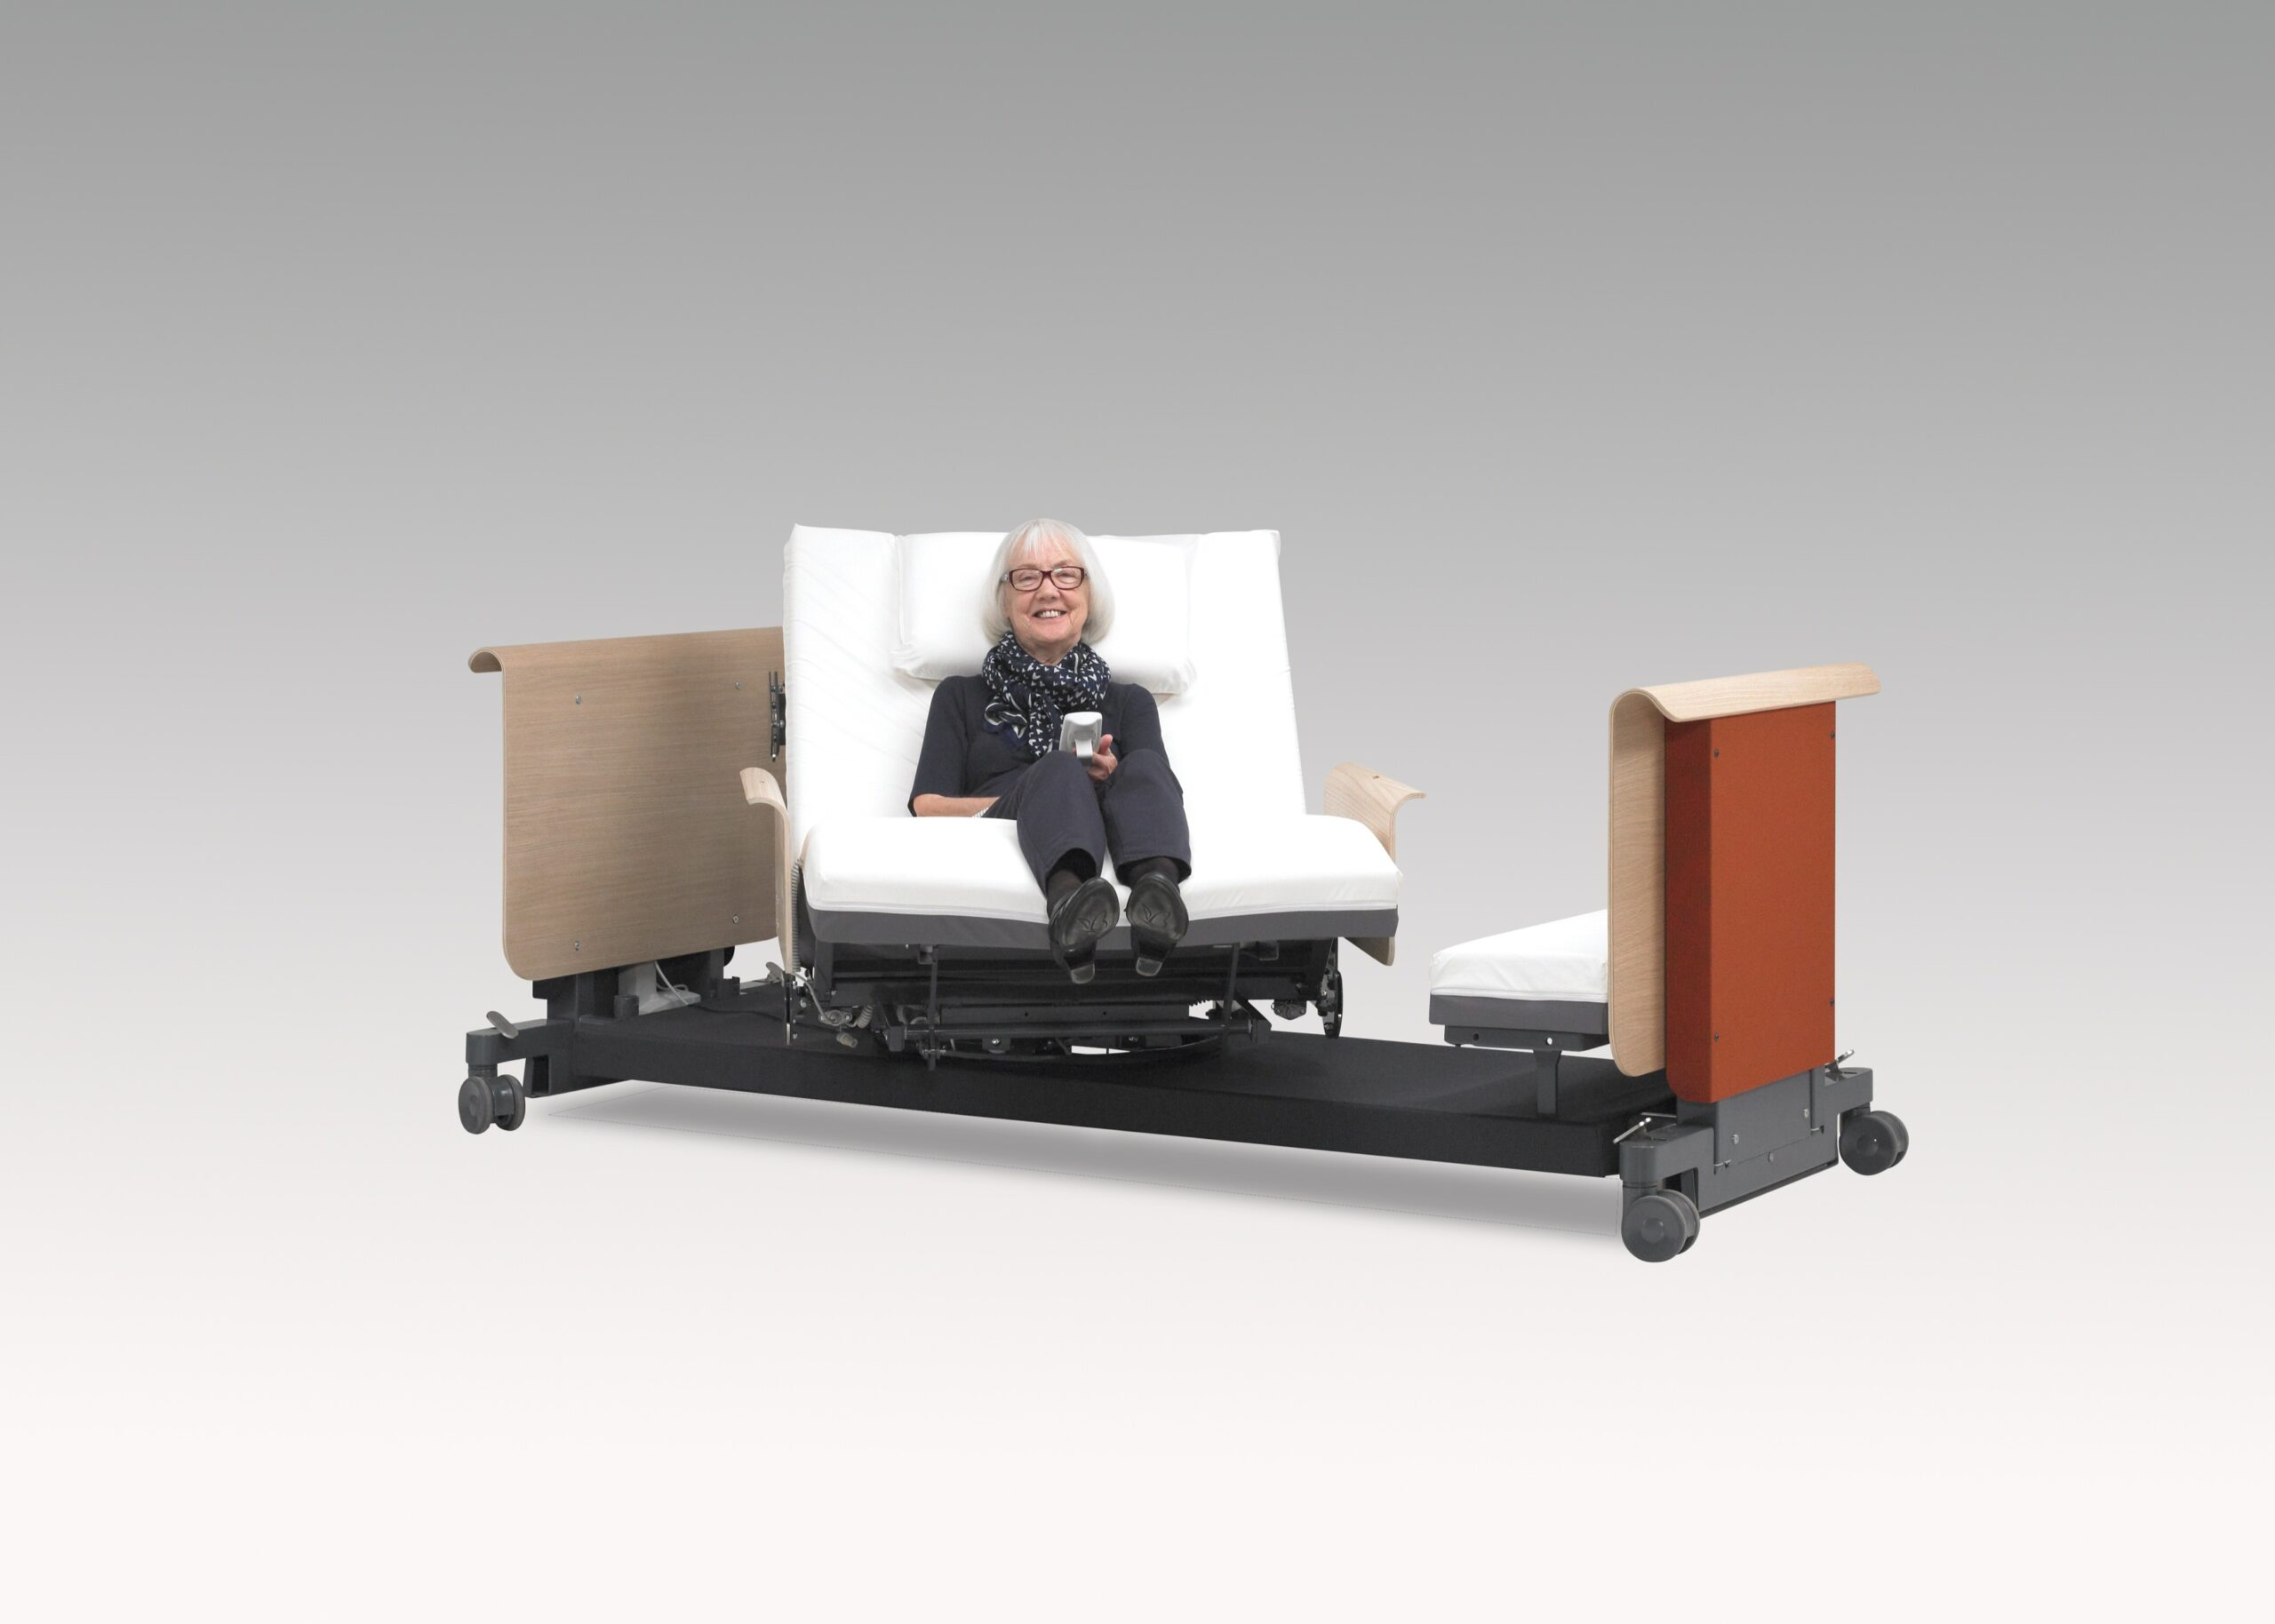 Pivot bed RotoBed care bed